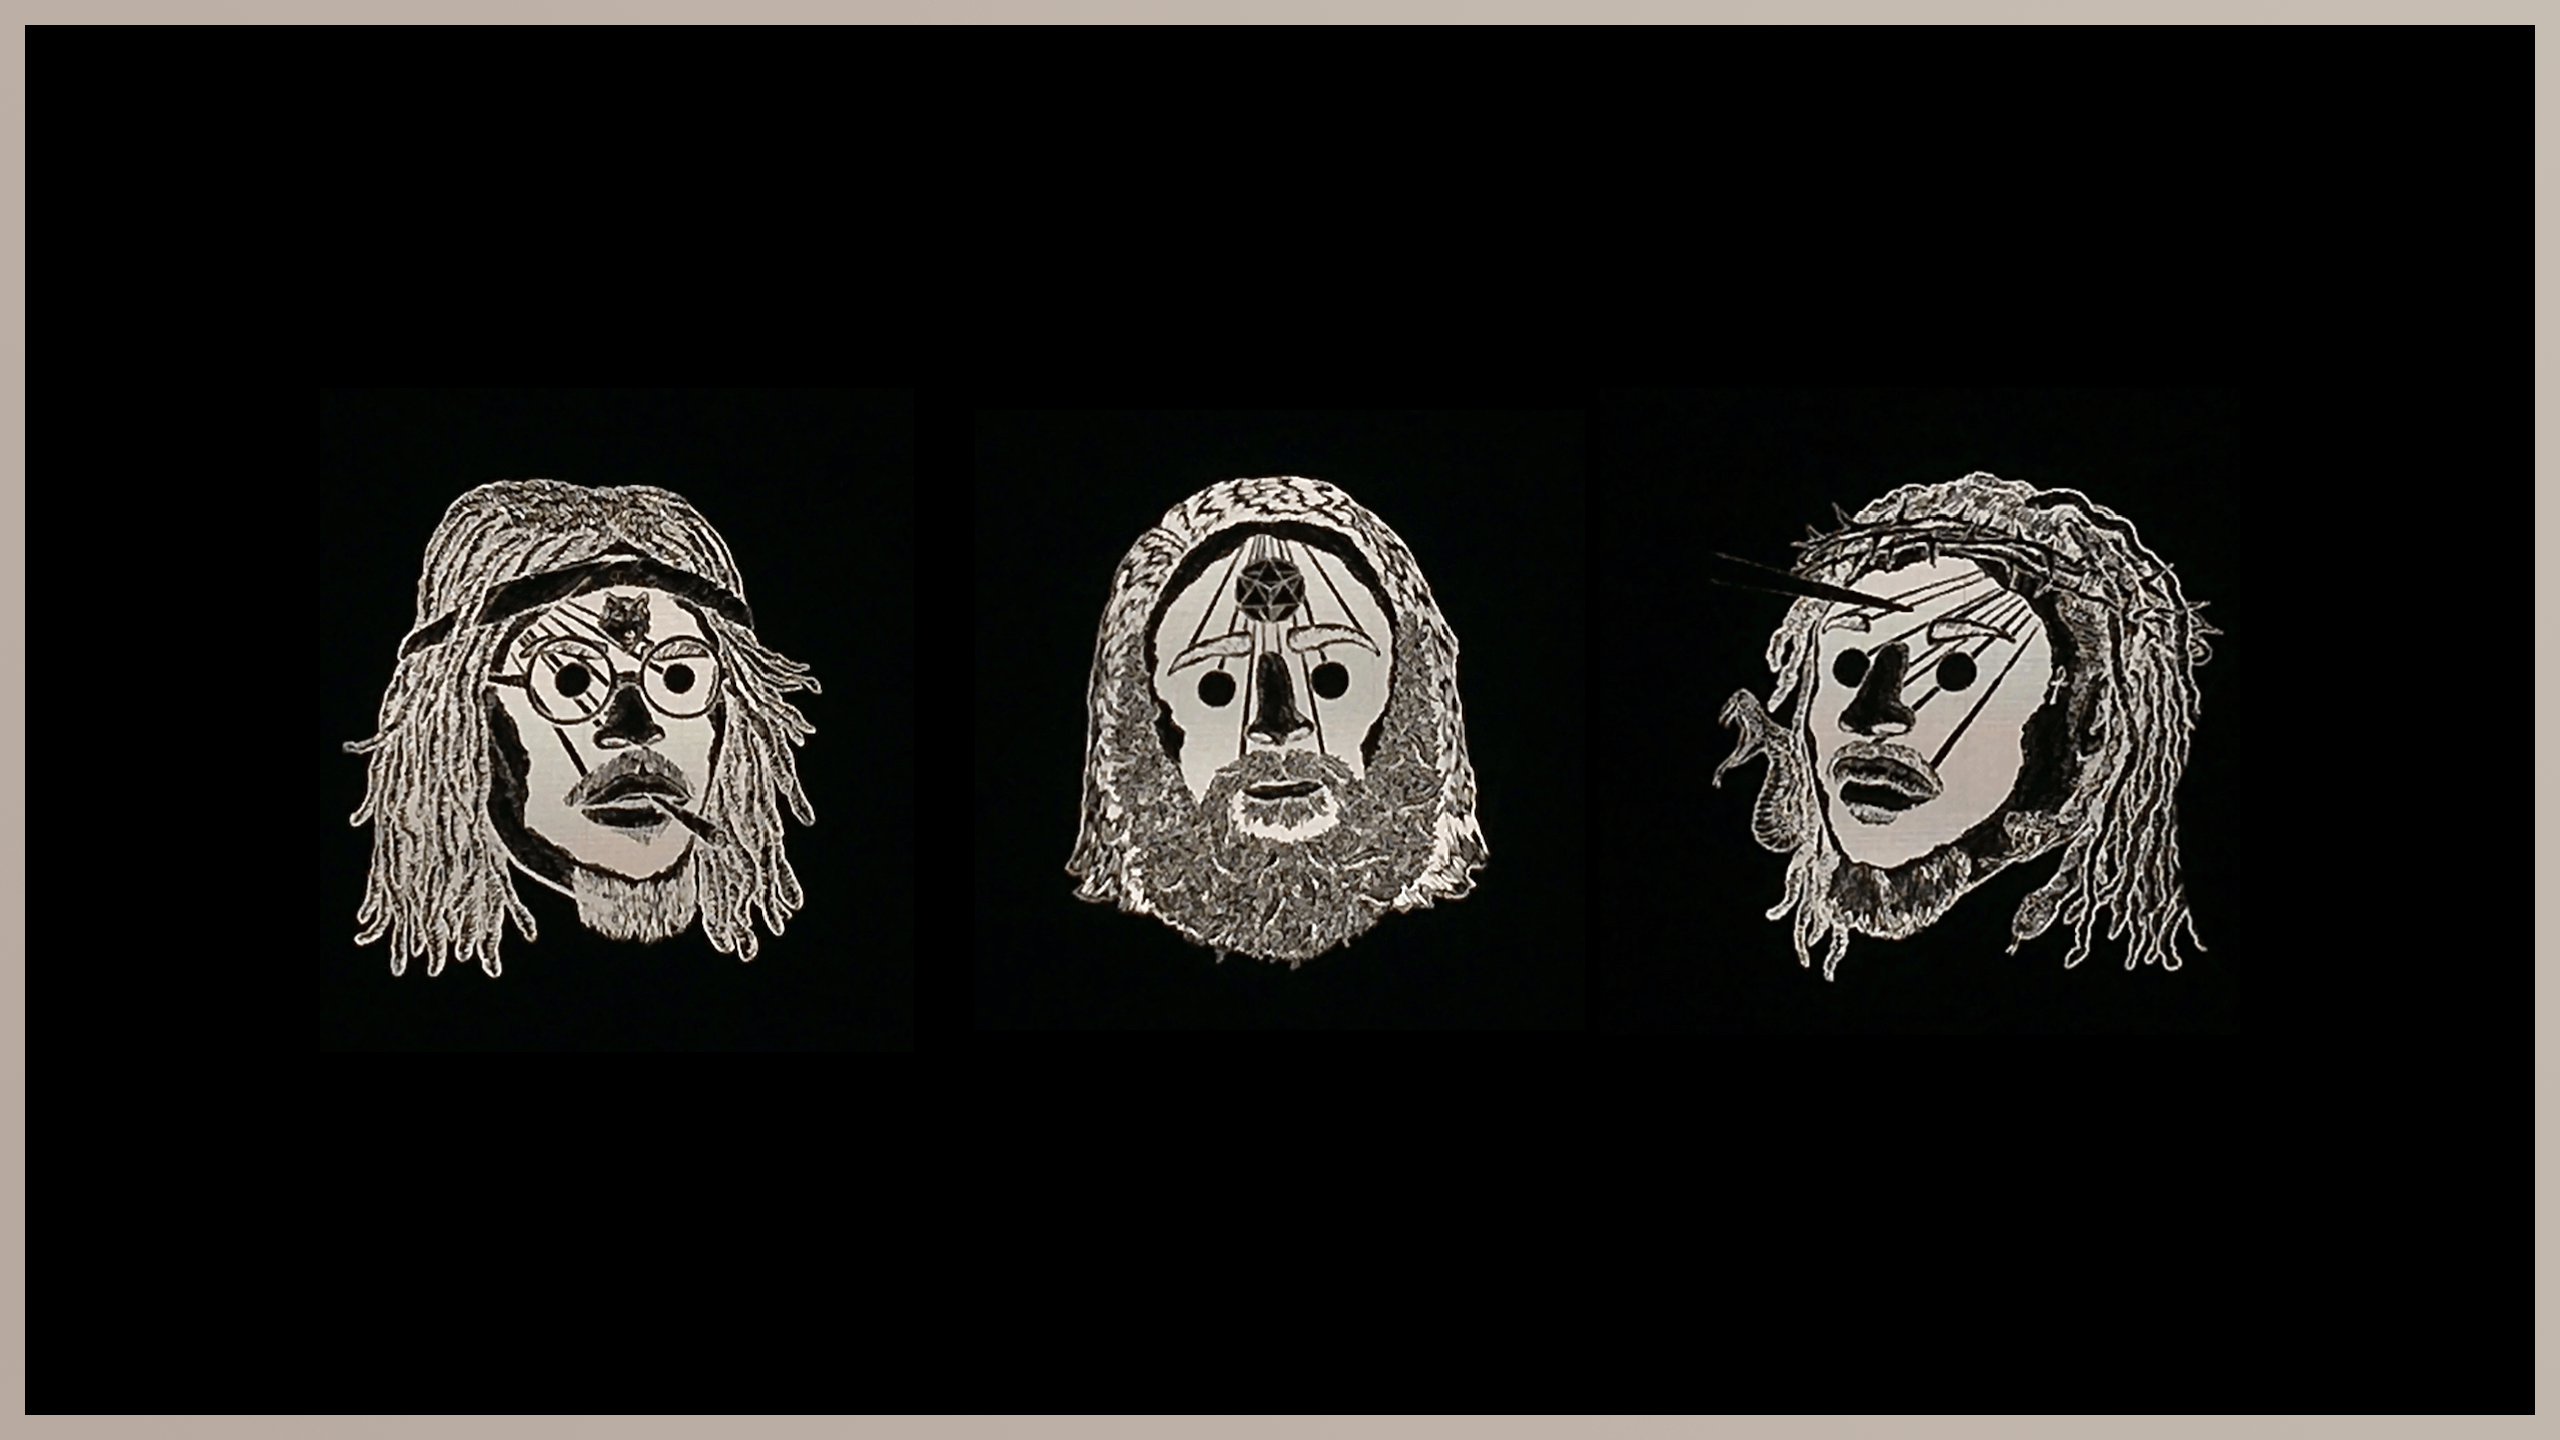 2560x1440 Wallpaper I made using the art from the 3001: A Laced Odyssey Tour ...